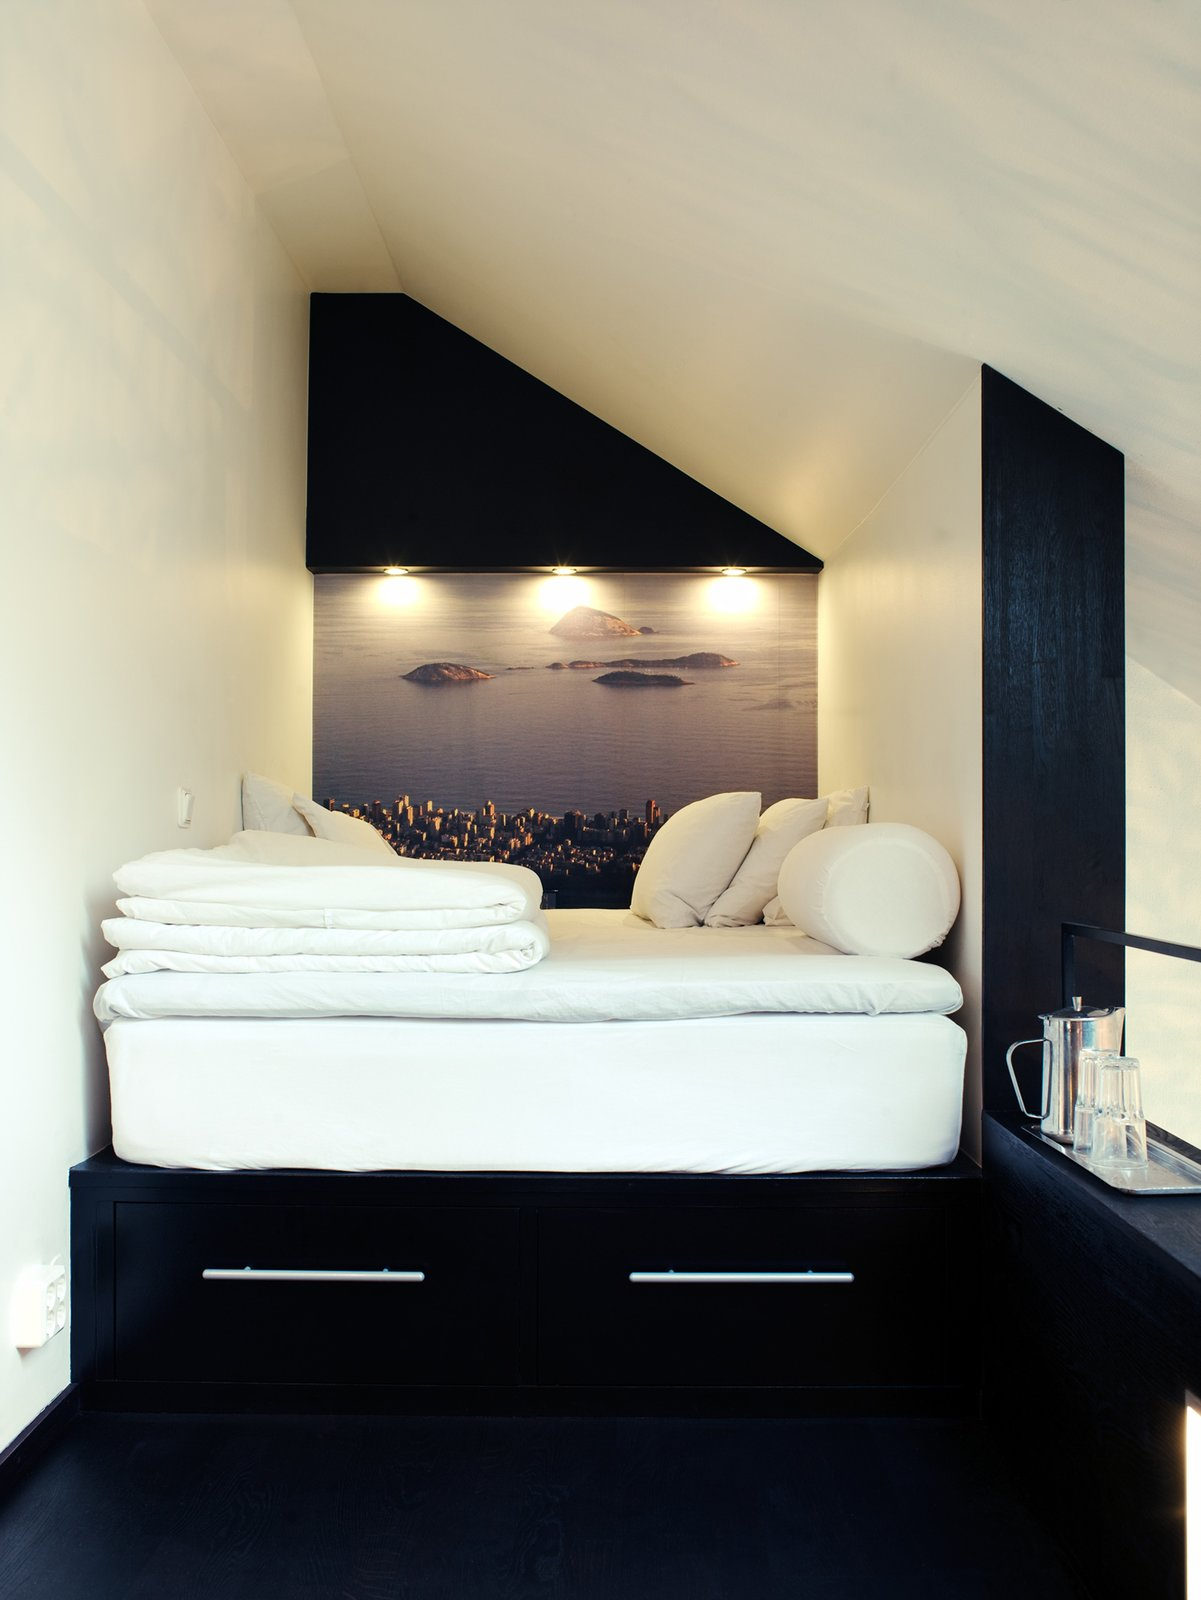 In the tiny sleeping loft is platform bed with two drawers beneath it. In place of wallpaper, Schonning enlarged a photograph he snapped in Rio de Janeiro. The inset spotlights and a small shelf at the end of the bed offer light and additional storage. Photo by Per Magnus Persson. Tiny Homes  by Erika Heet